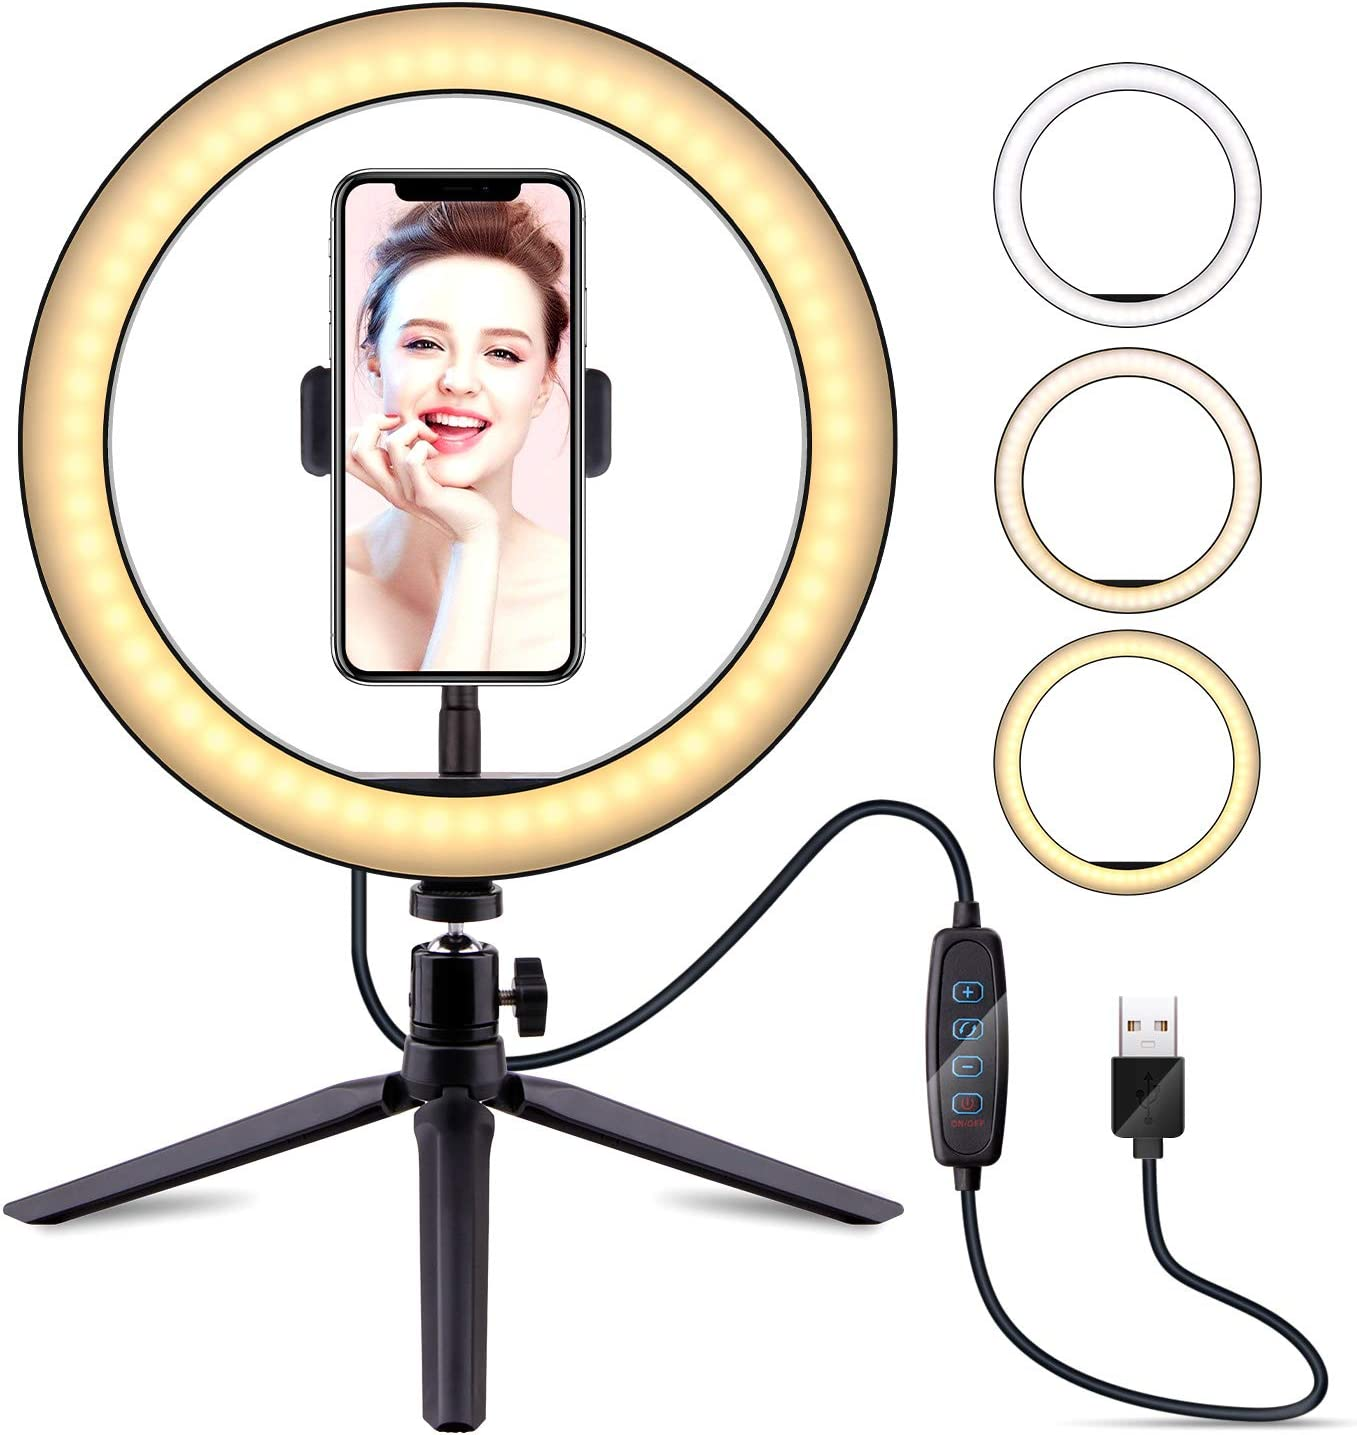 10 Selfie Ring Light with Tripod Stand LATZZ Dimmable Desktop LED Lamp Camera Ringlight for Live Stream//Makeup//YouTube Video//Photography